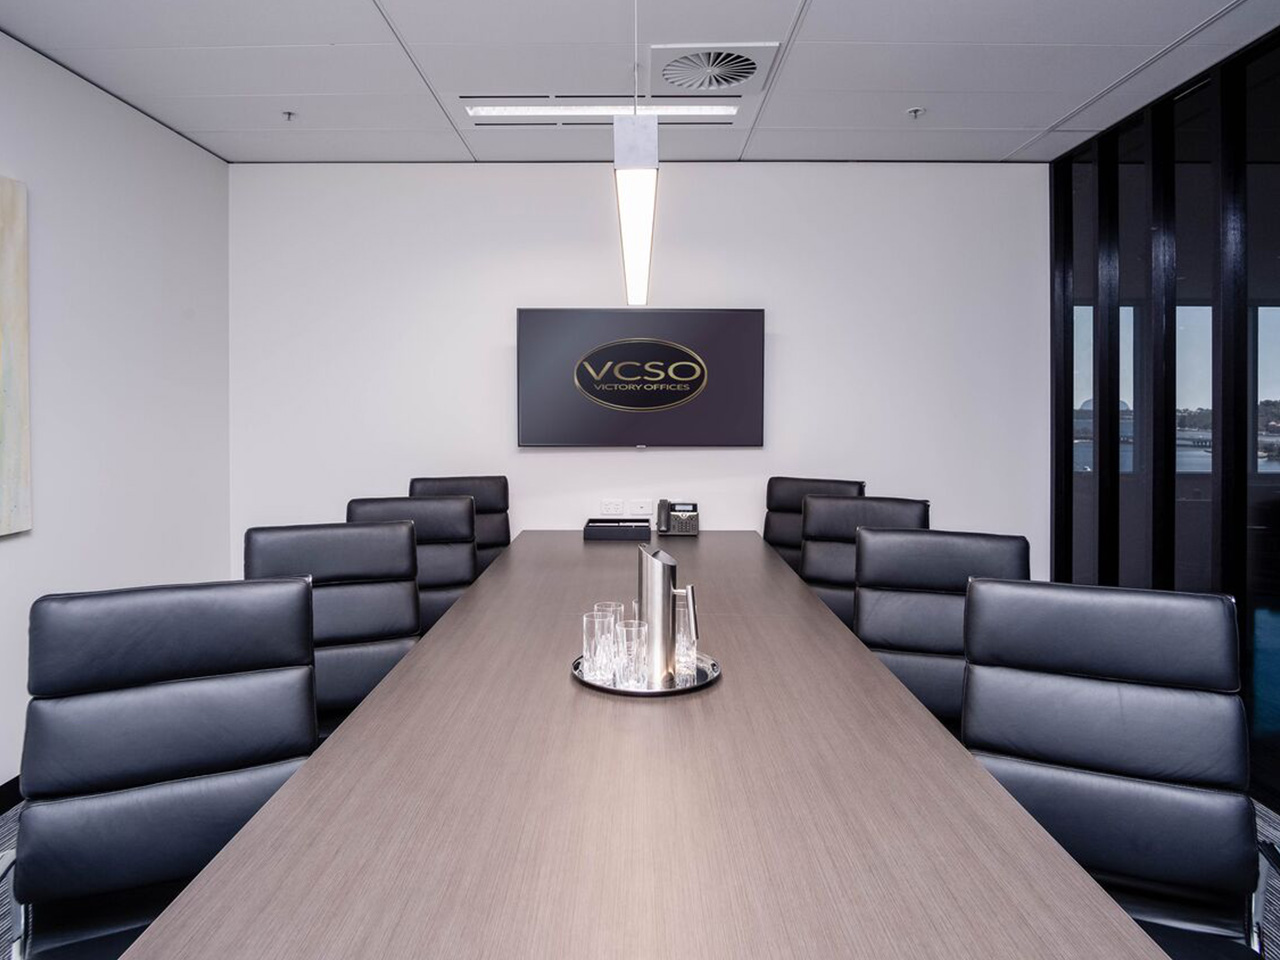 Meeting Room With A TV Screen And A Long Desk With Eight Chairs